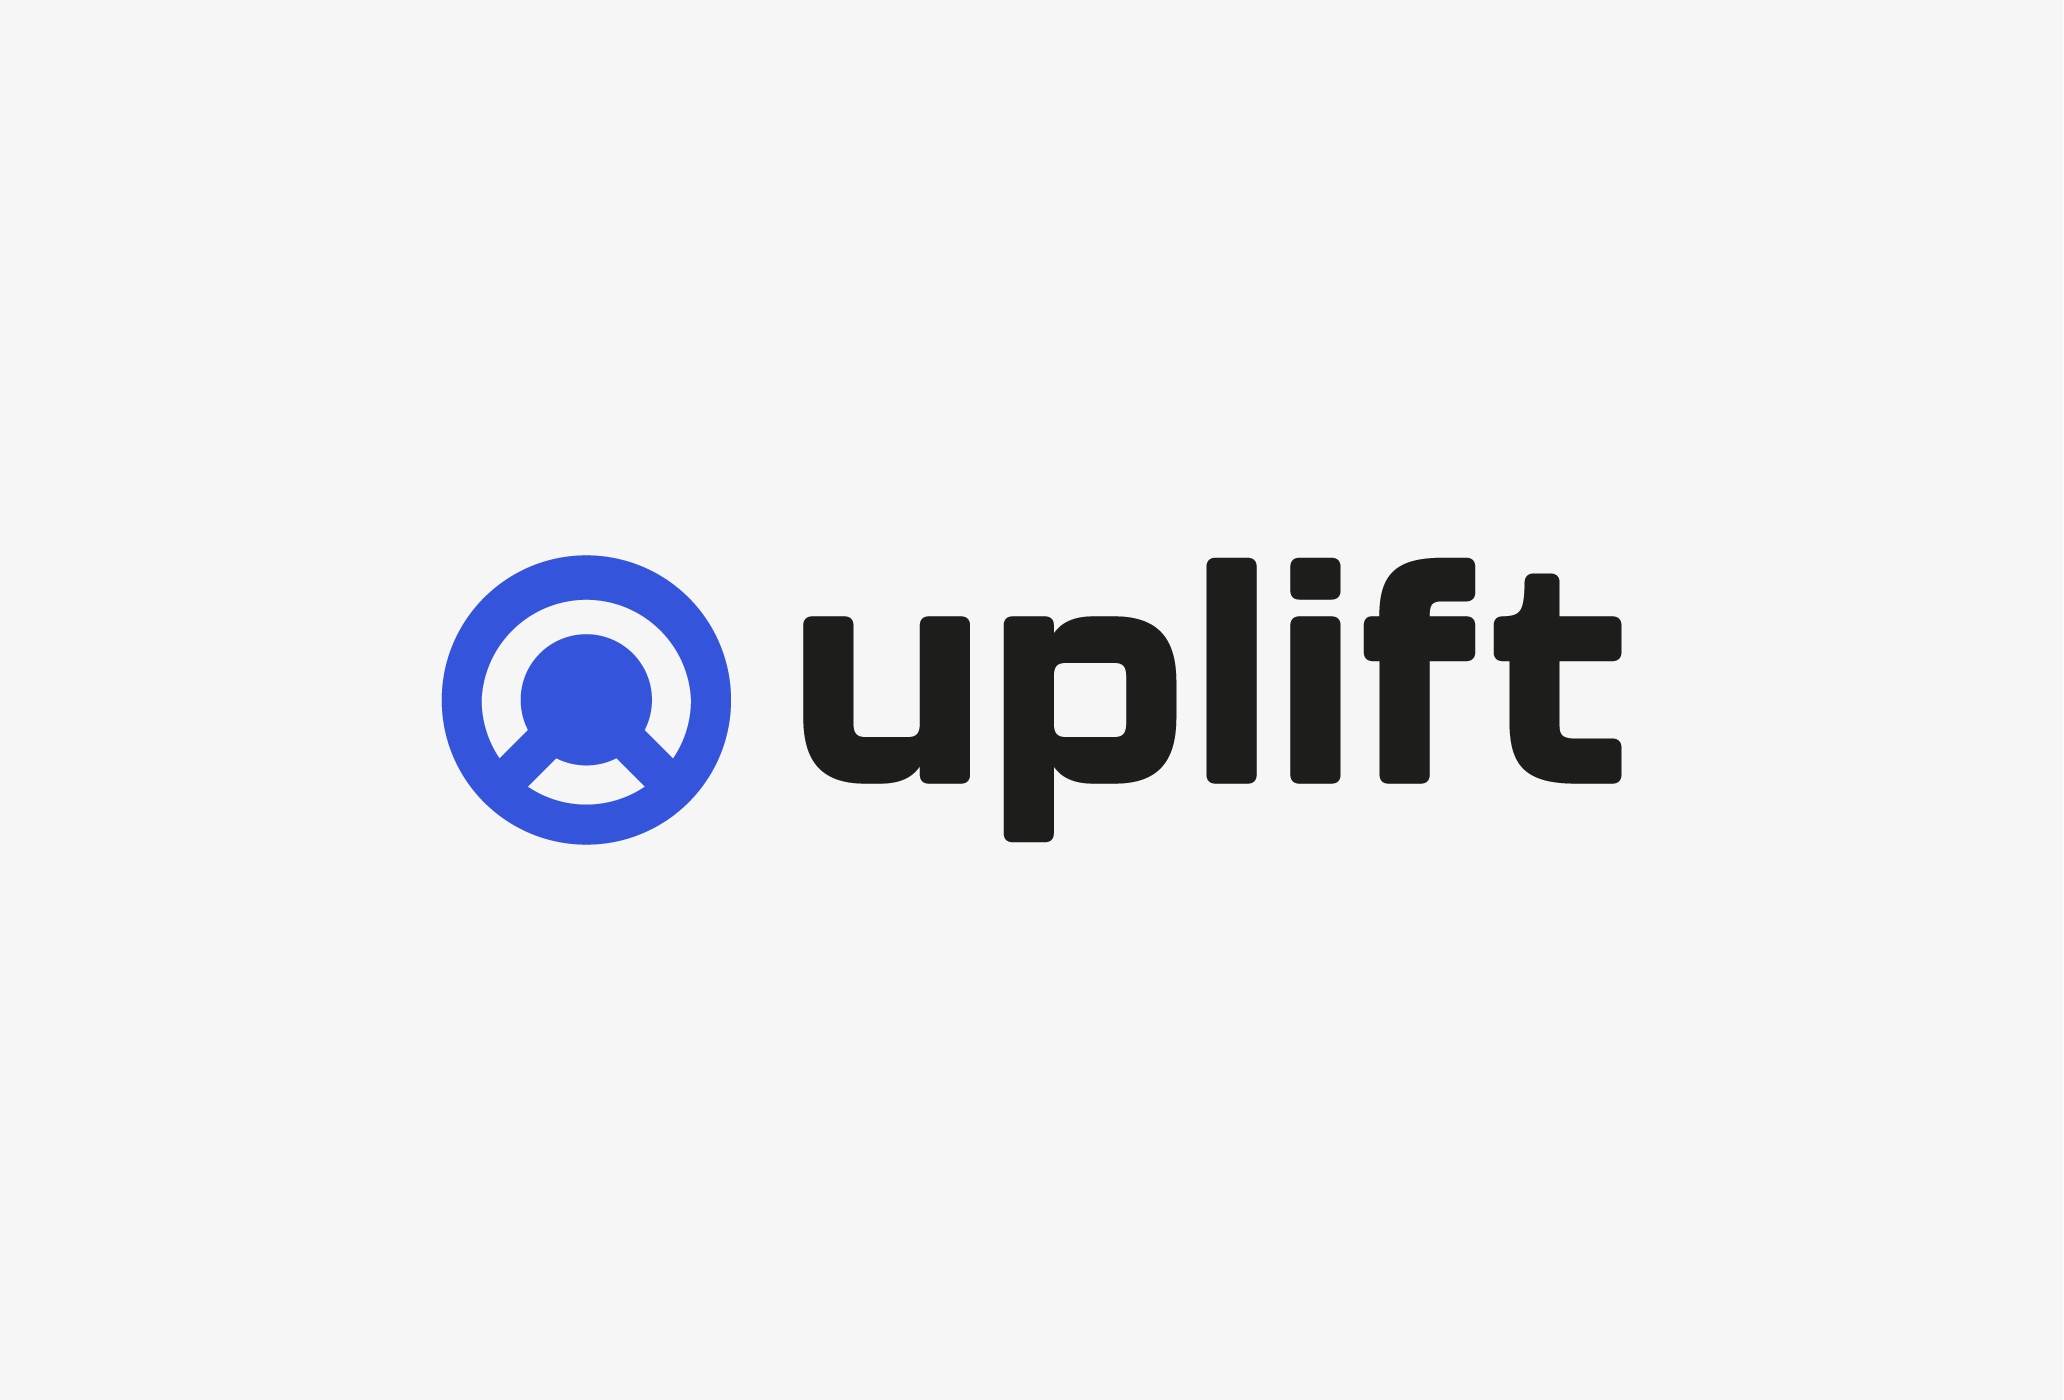 UPLIFT: Project Update – August 2020